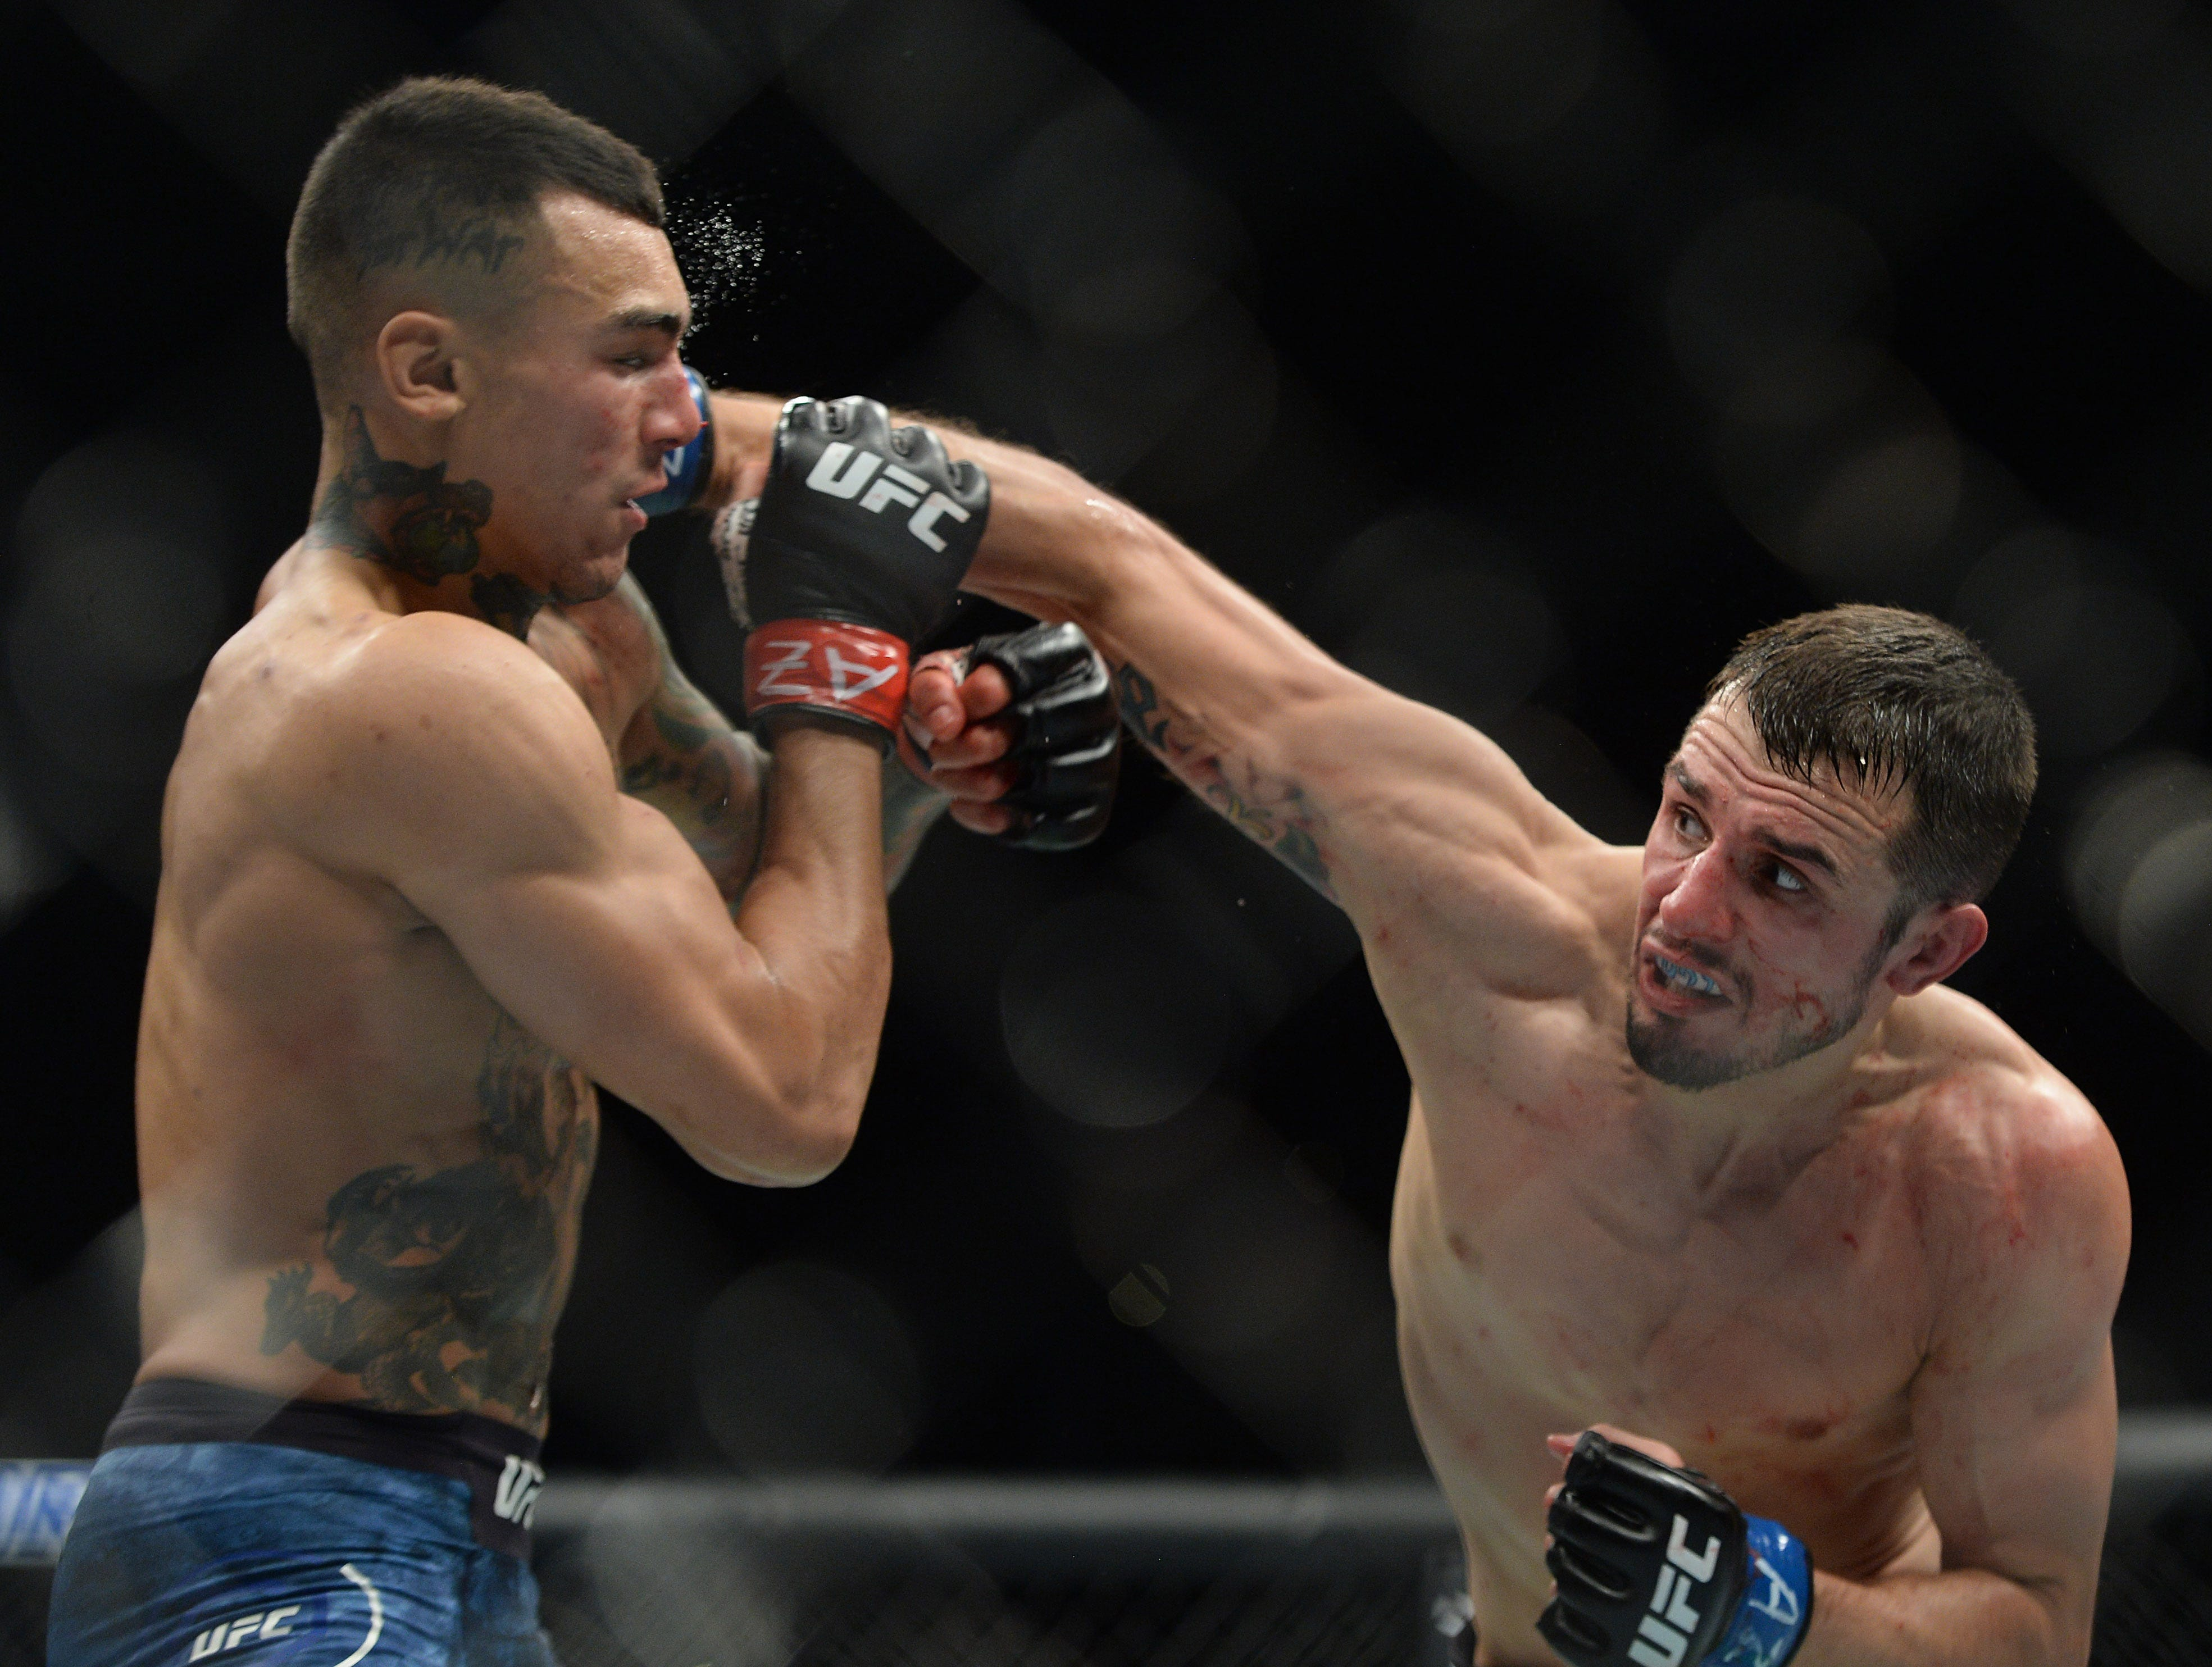 Myles Jury hits Andre Fili with a right hand during their featherweight bout at UFC Fight Night at Talking Stick Resort Arena. Fili won by unanimous decision.